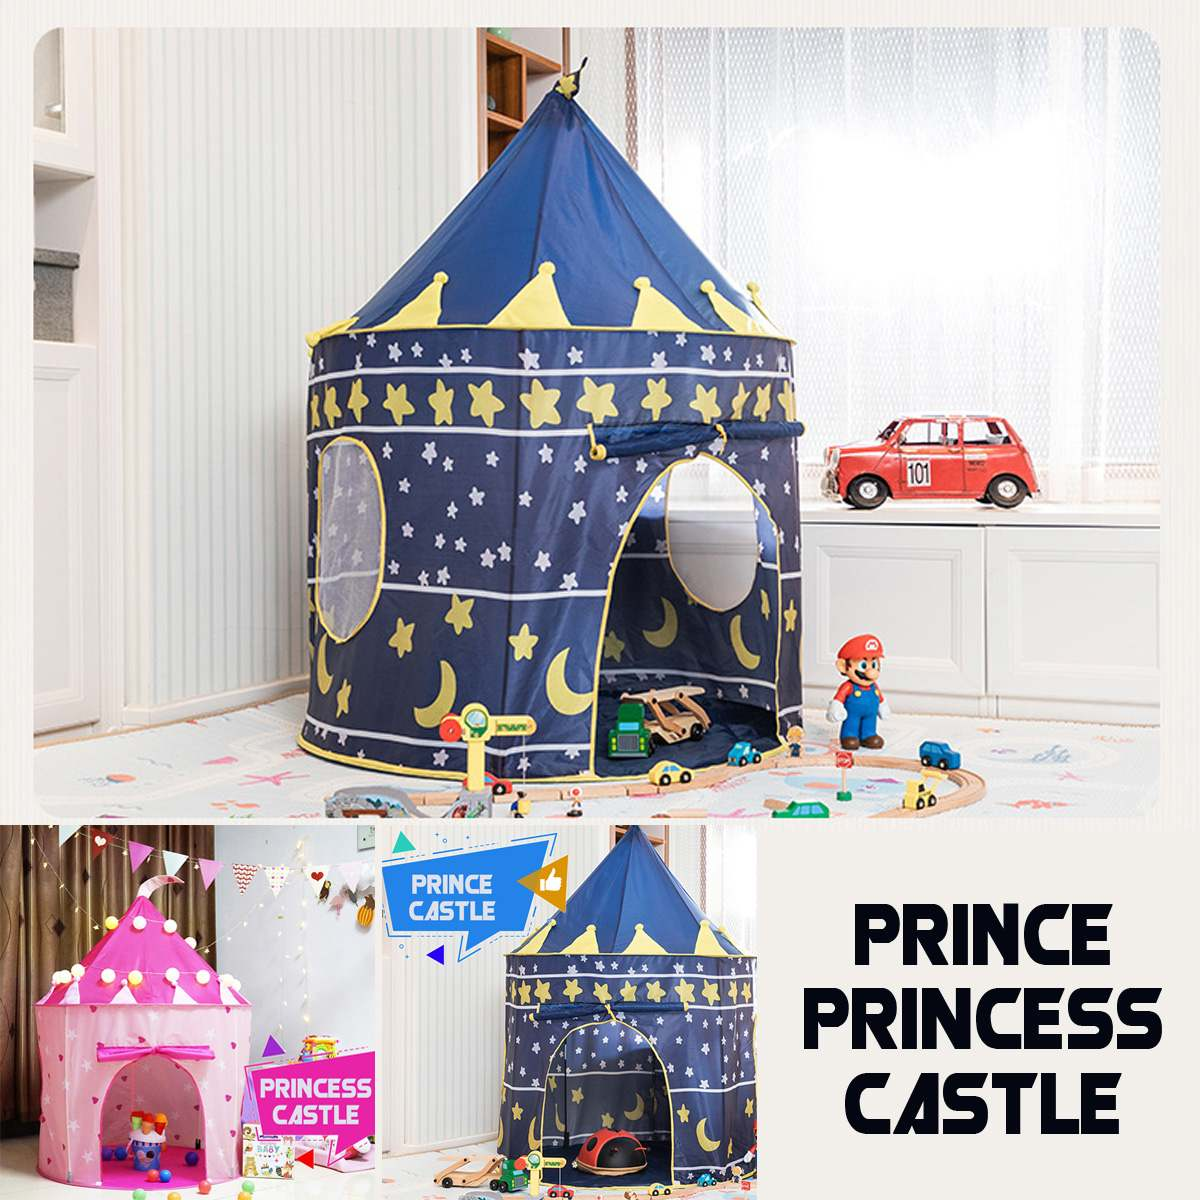 LBLA Portable Princess Prince Castle Kid Tent Children Teepee Tent Play House Tent Birthday Christmas New Year Gift Present